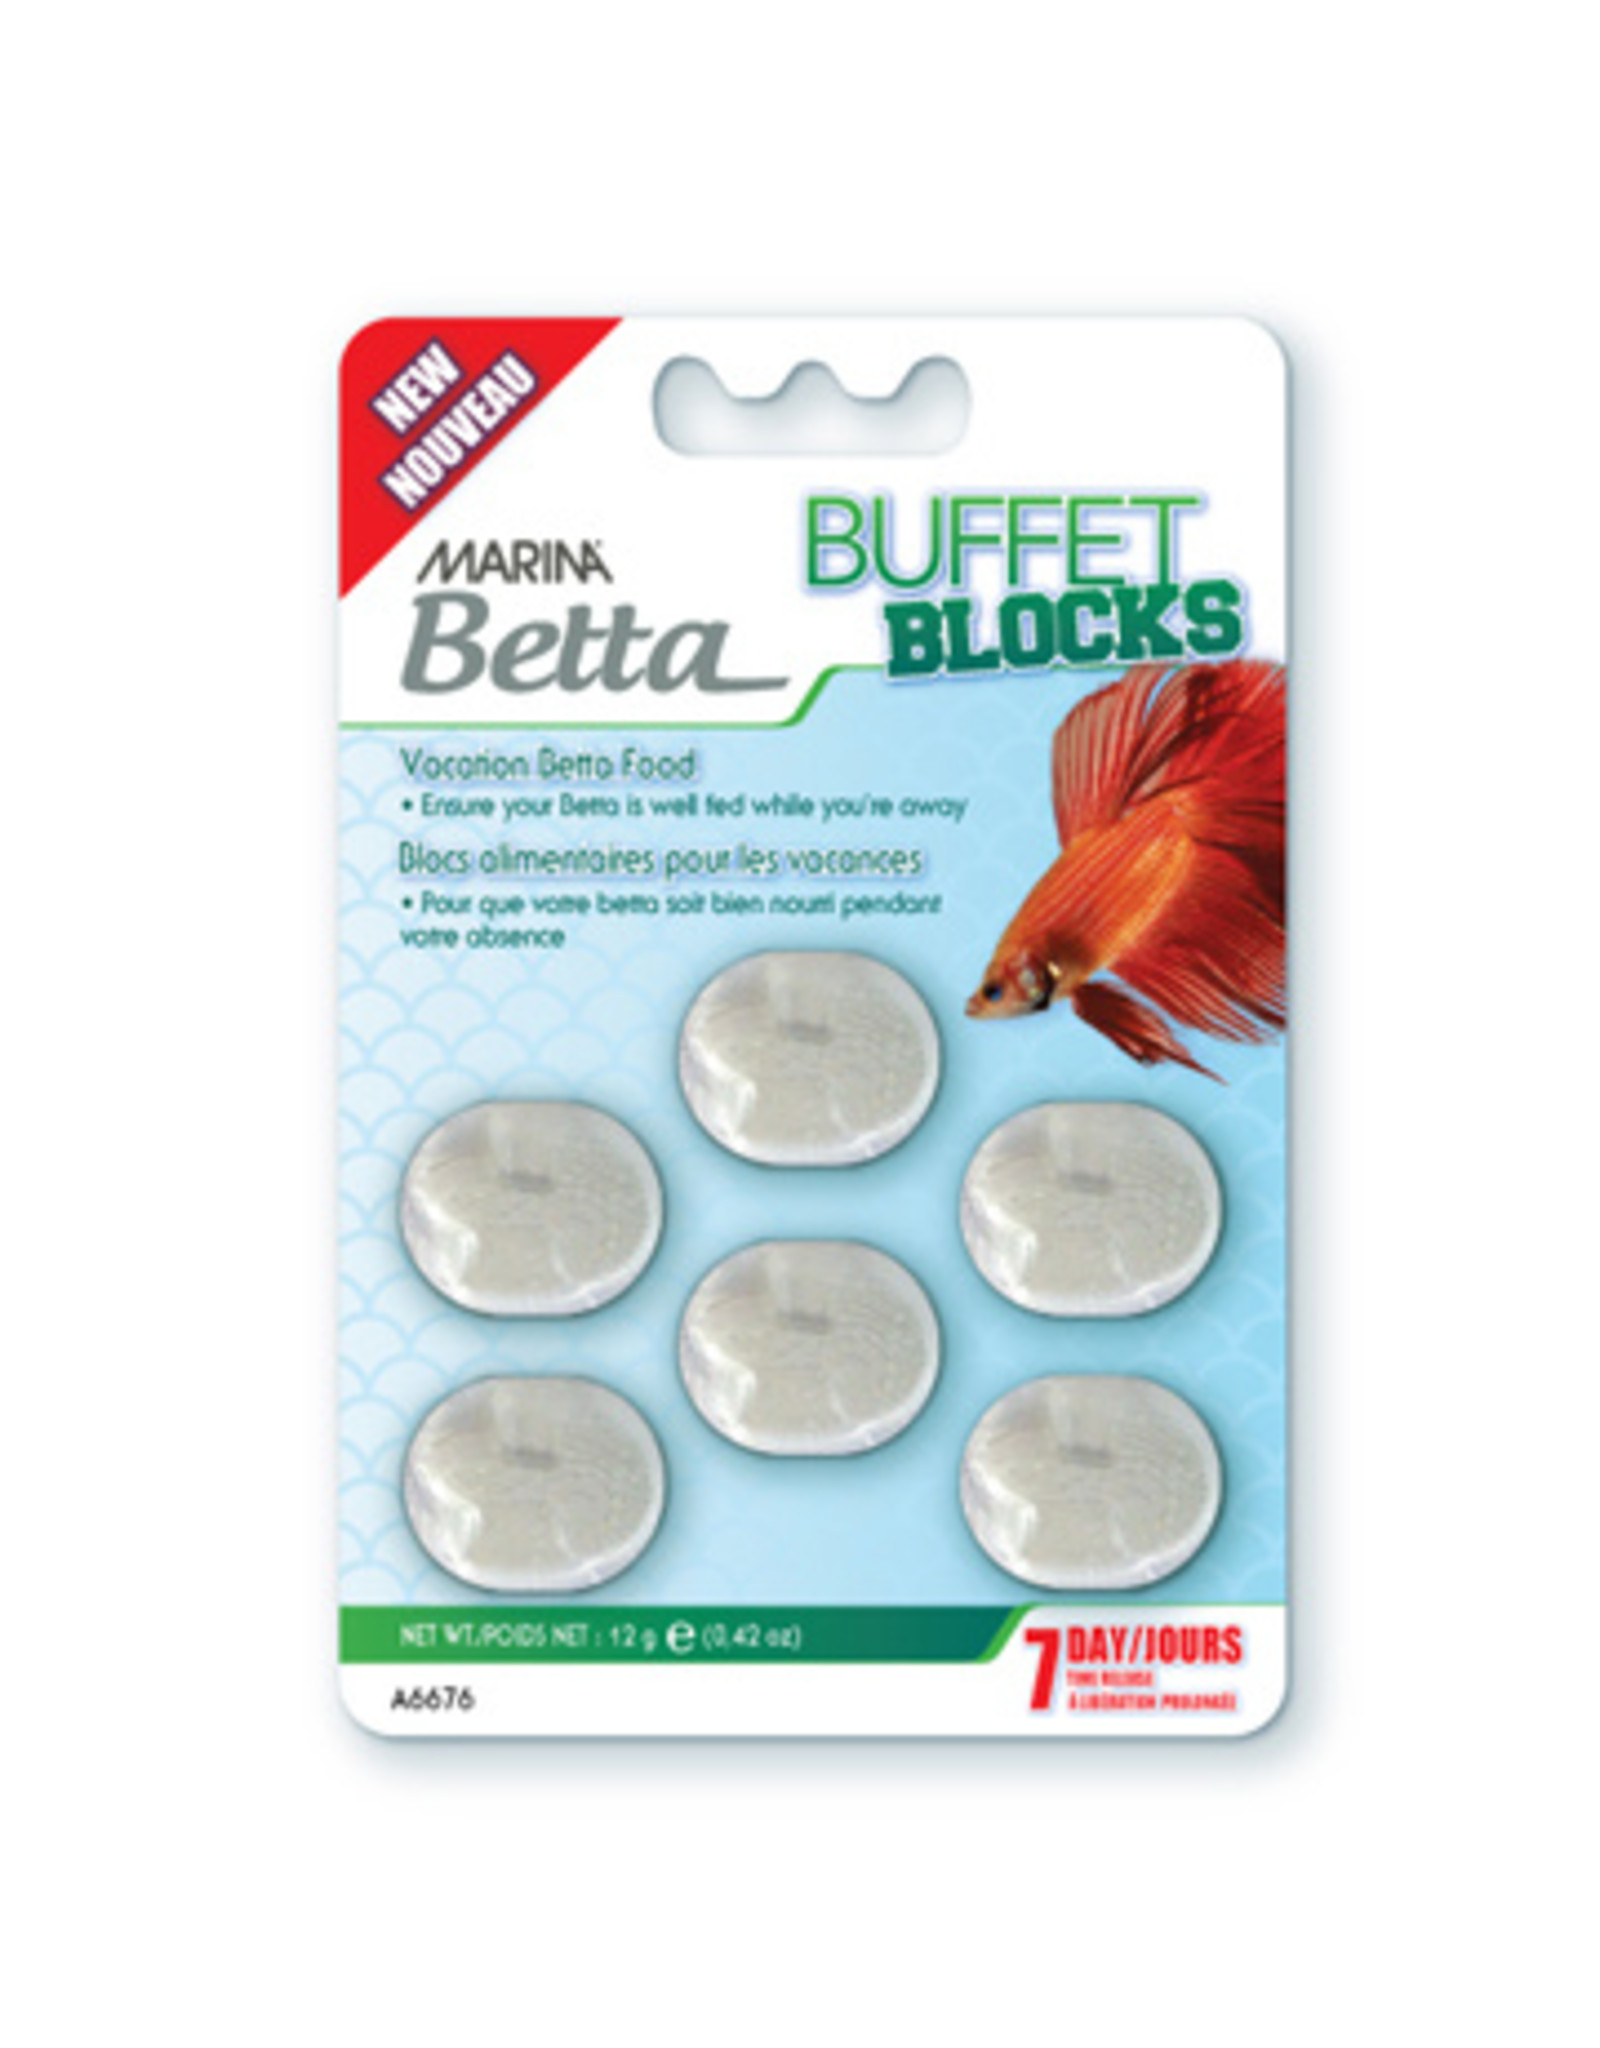 Marina MARINA Betta Vacation Block Food, 12g